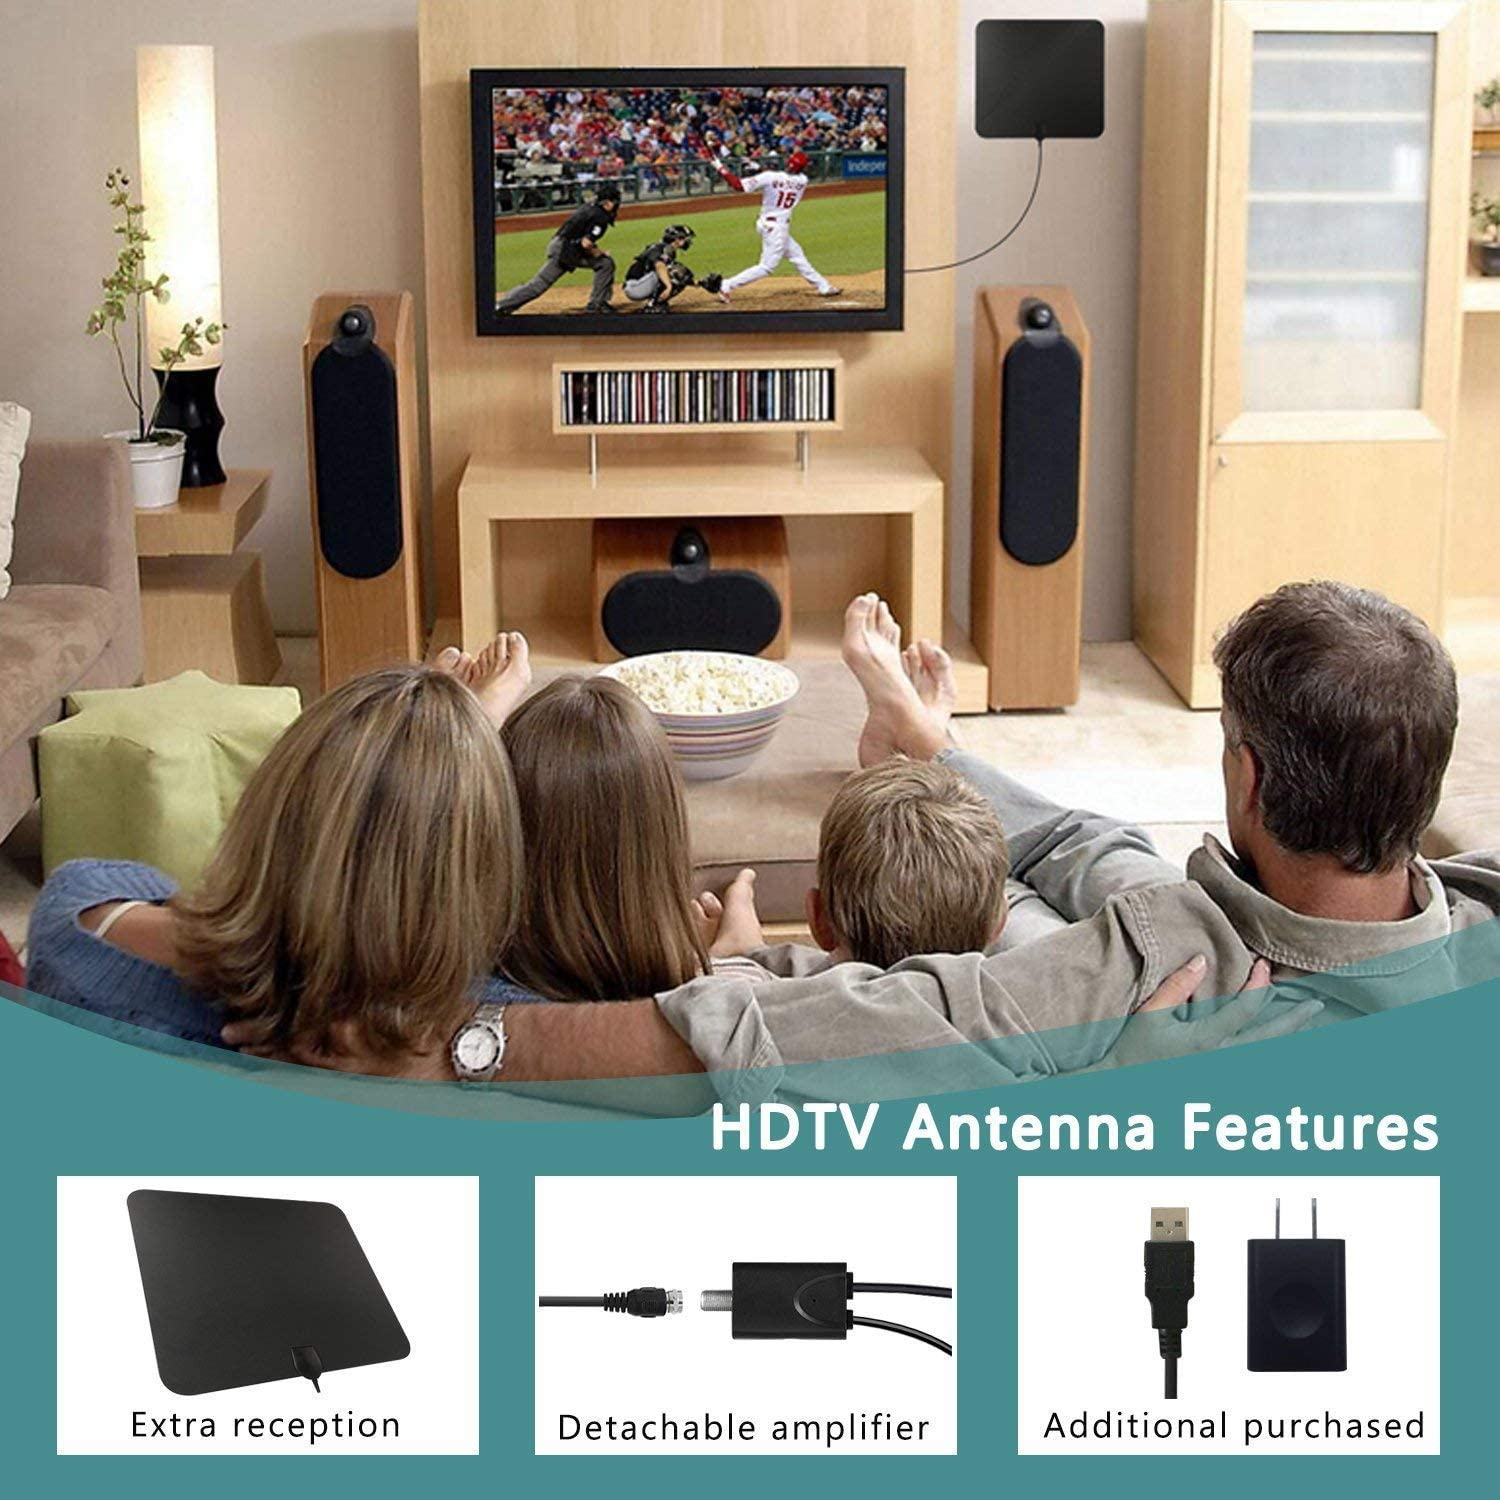 Digital HDTV Antenna Long Range with Amplifier Signal Booster 60-90 Miles TV Antenna Indoor Amplified HDTV Antenna Efind Digital TV Antenna Indoor 10 Feet Coax Cable//USB Power Adapter